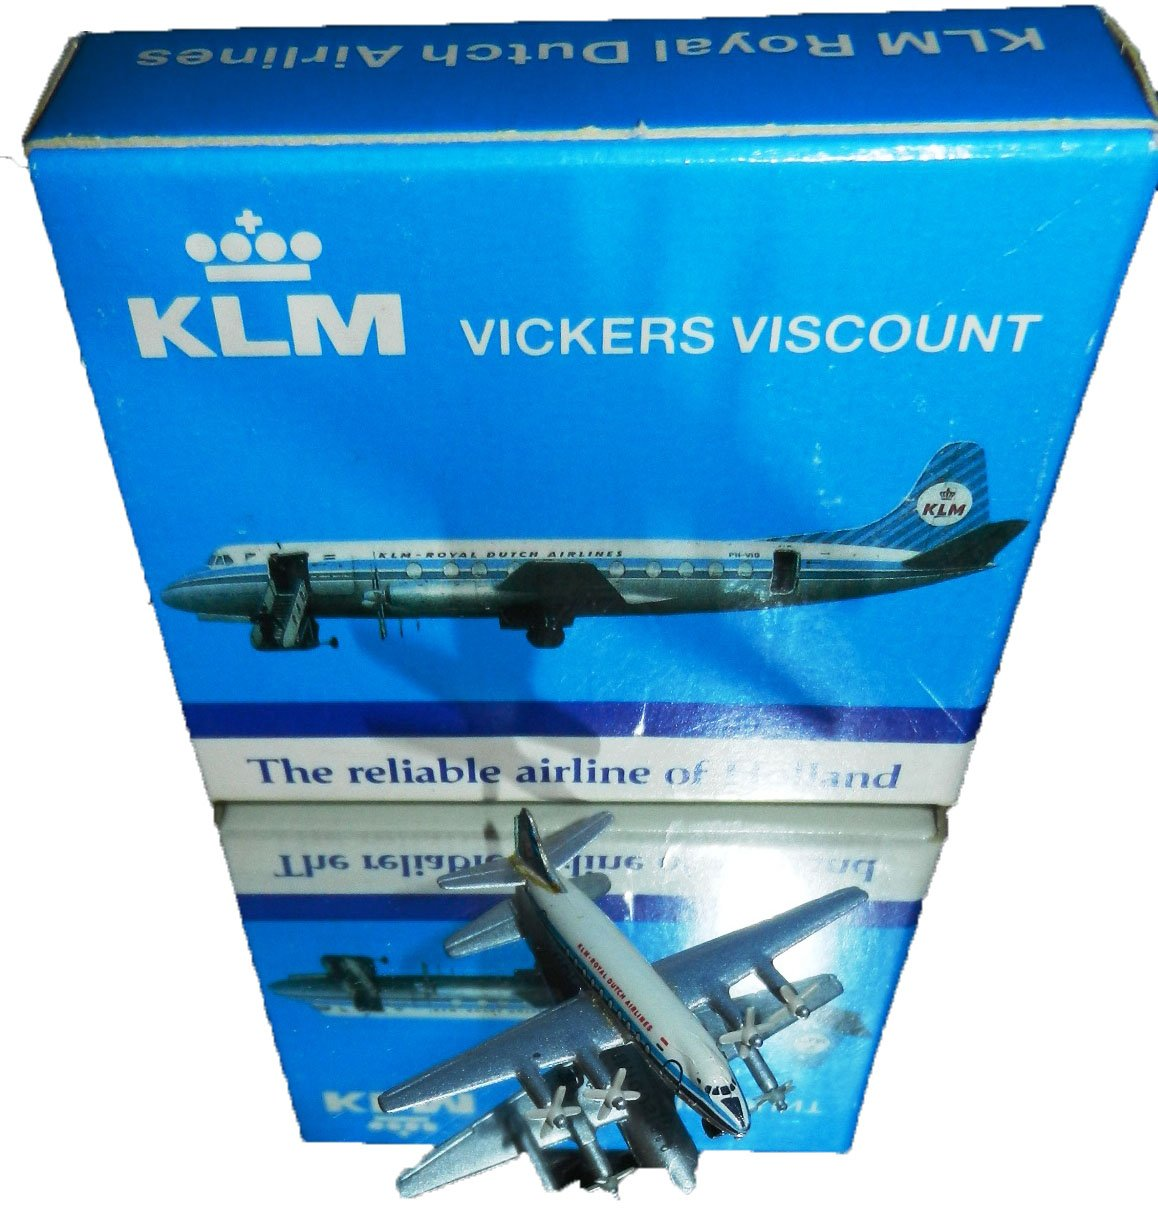 Schabak 1:600 Scale Diecast 941//5 KLM Royal Dutch Airlines Vickers Viscount Display Model